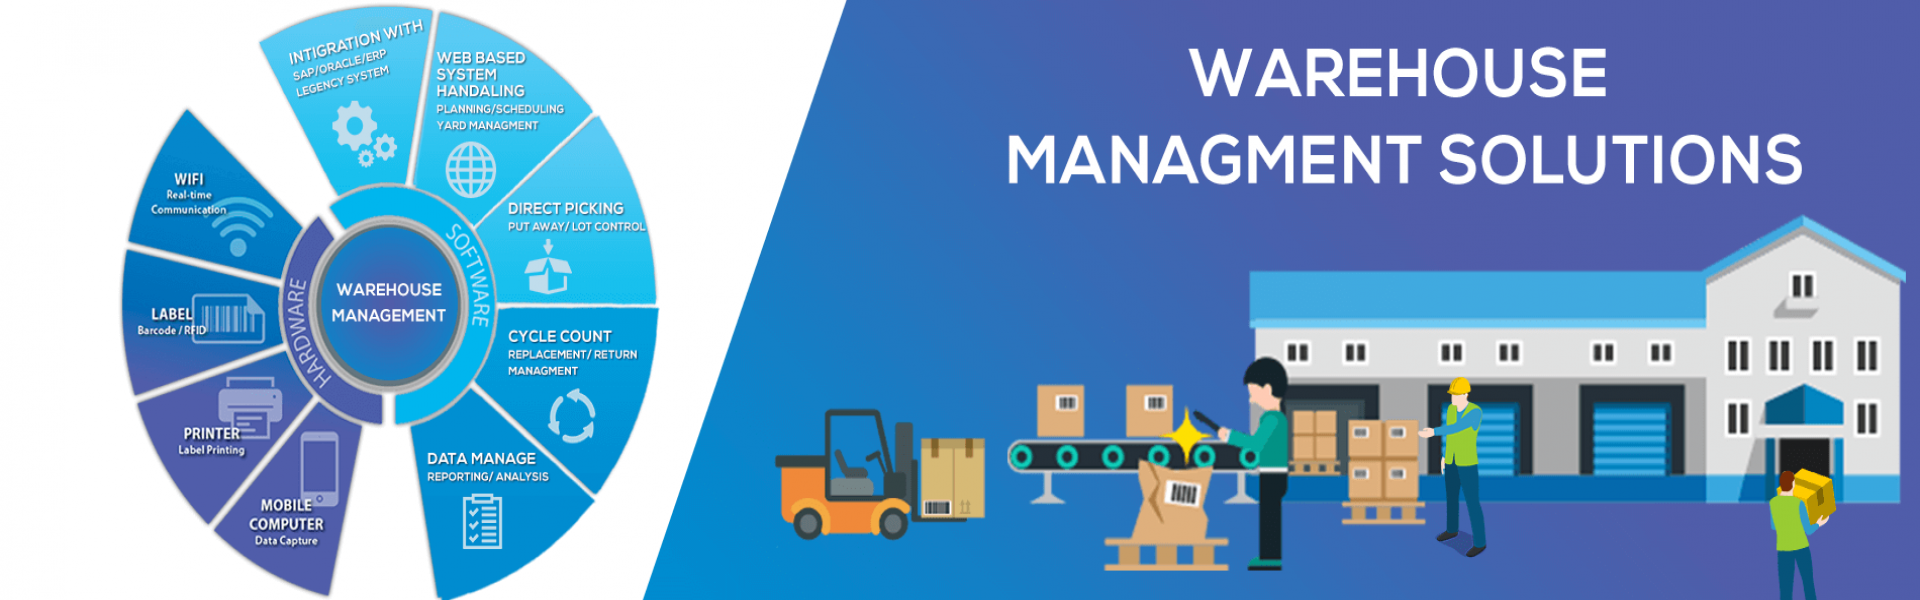 Best Warehouse Management Solutions | Warehouse Management System Solution